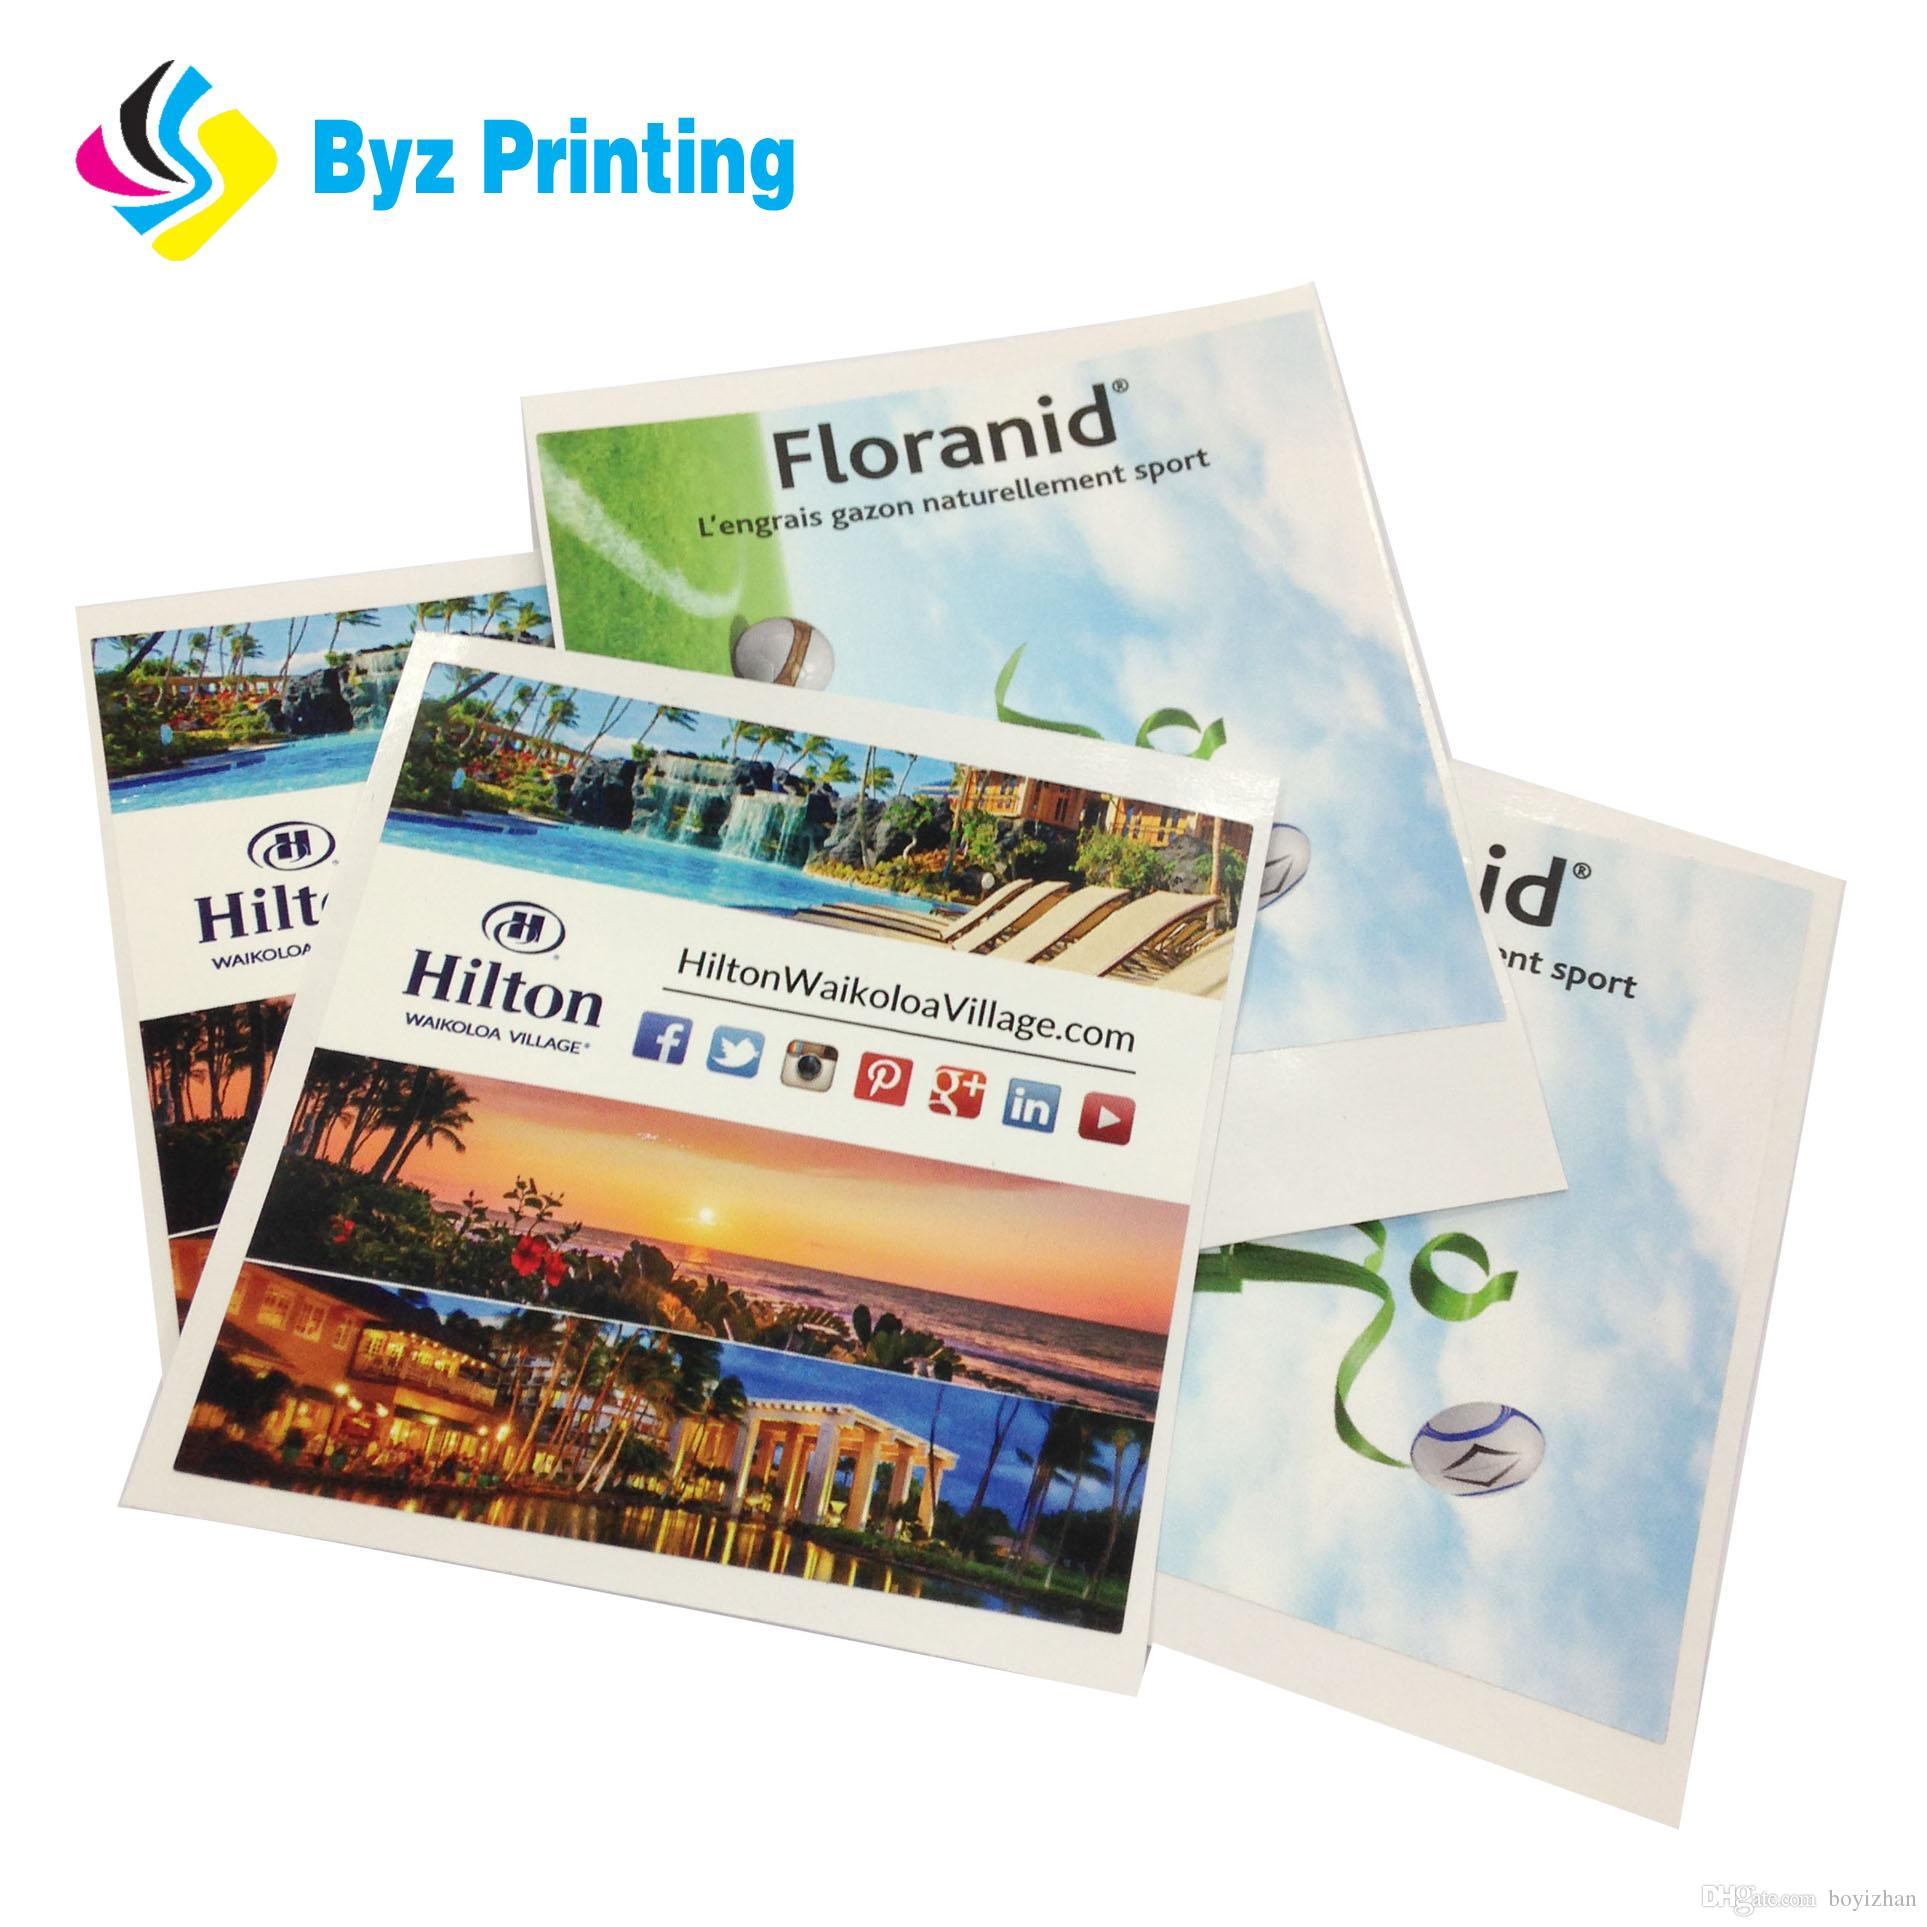 2019 promotional gifts use and pvc stickercheap custom vinyl stickers with printing from boyizhan 0 04 dhgate com